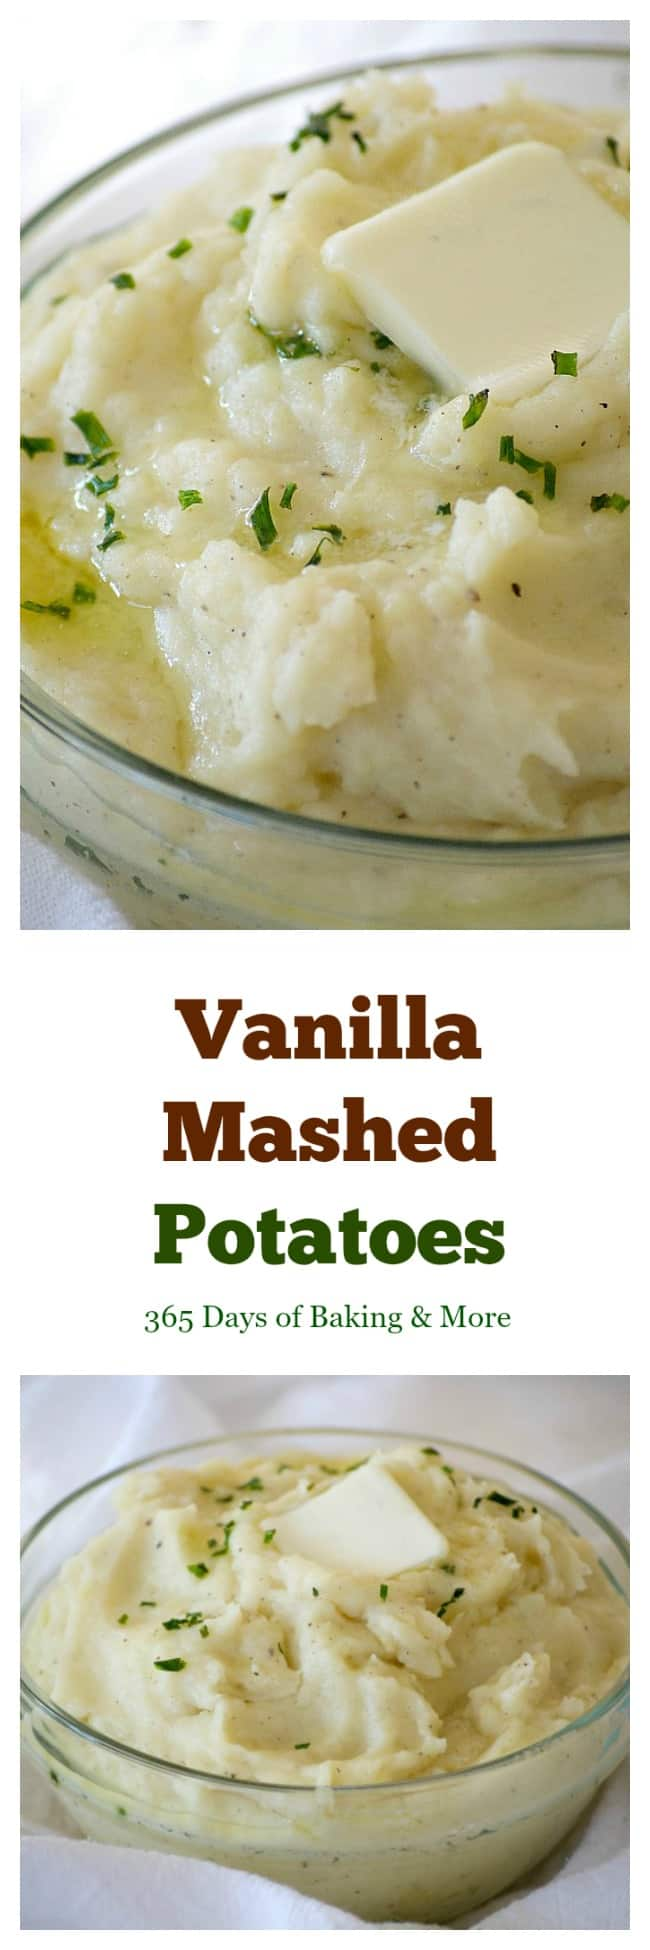 These Vanilla Mashed Potatoes are your classic mashed potatoes made even better with mascarpone and vanilla paste. The perfect complement to beef or turkey!